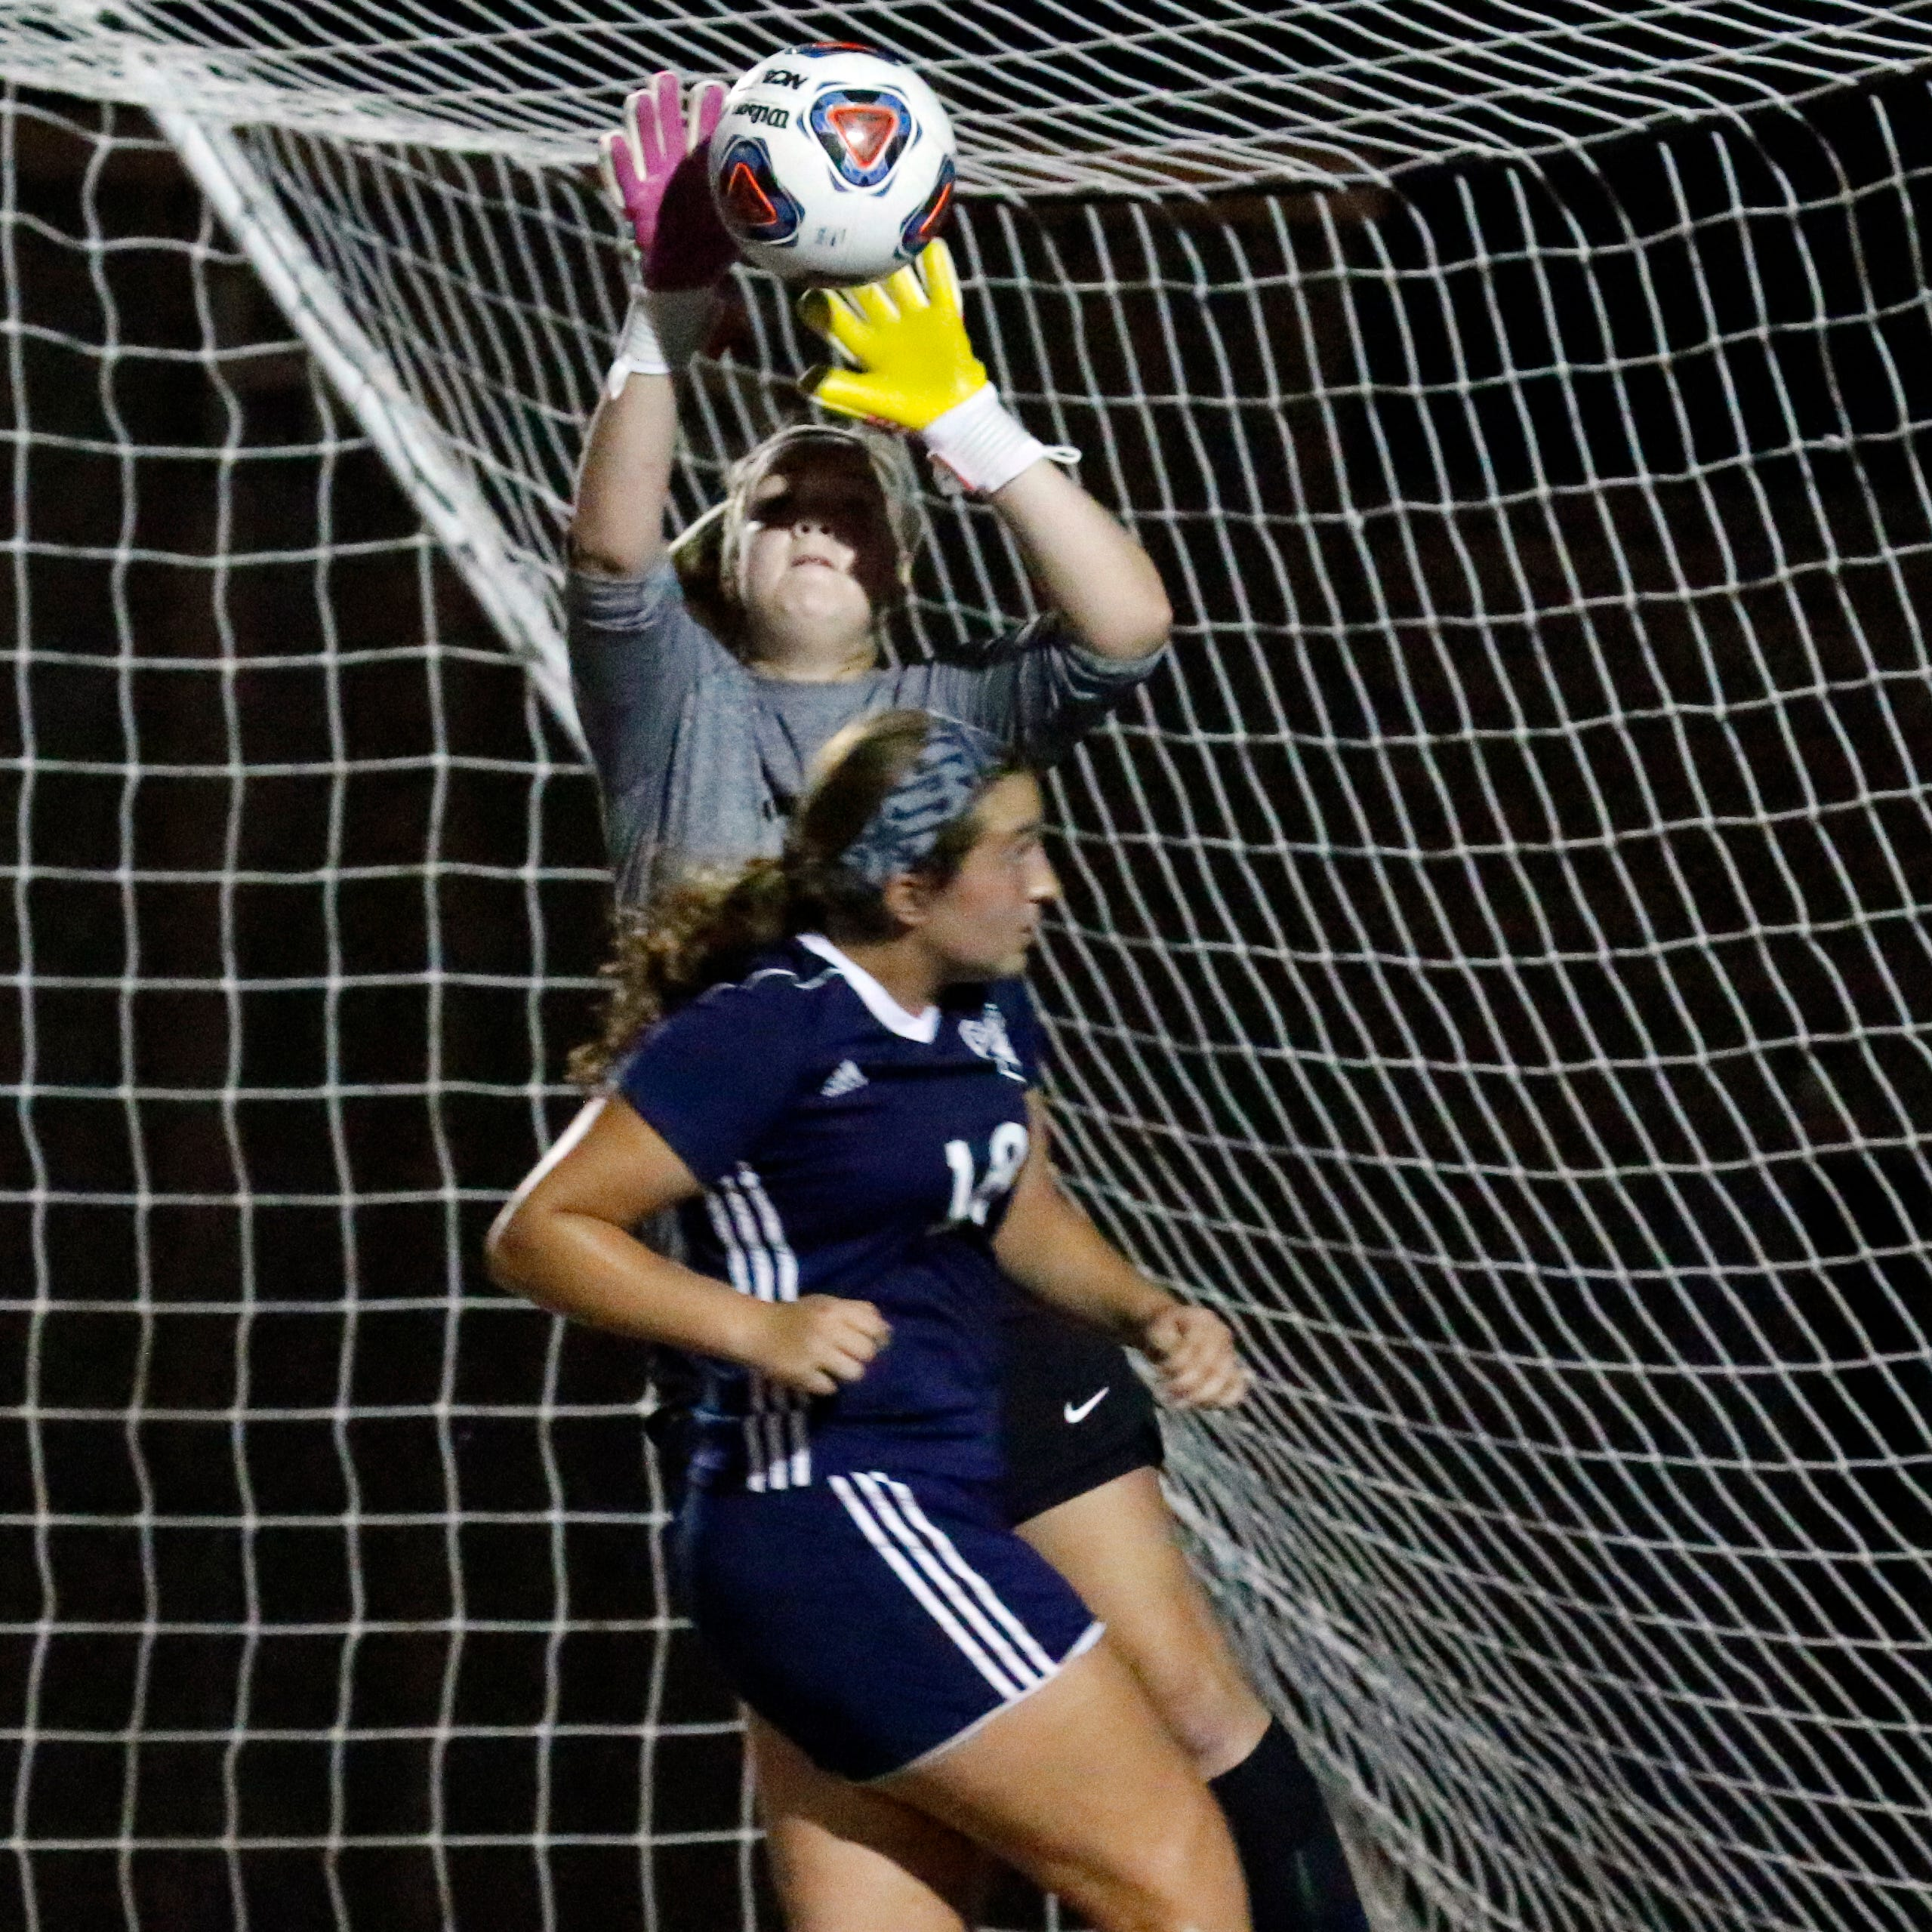 Behind Weaver's outstanding play, Lancaster pulls out 1-0 win over Falcons